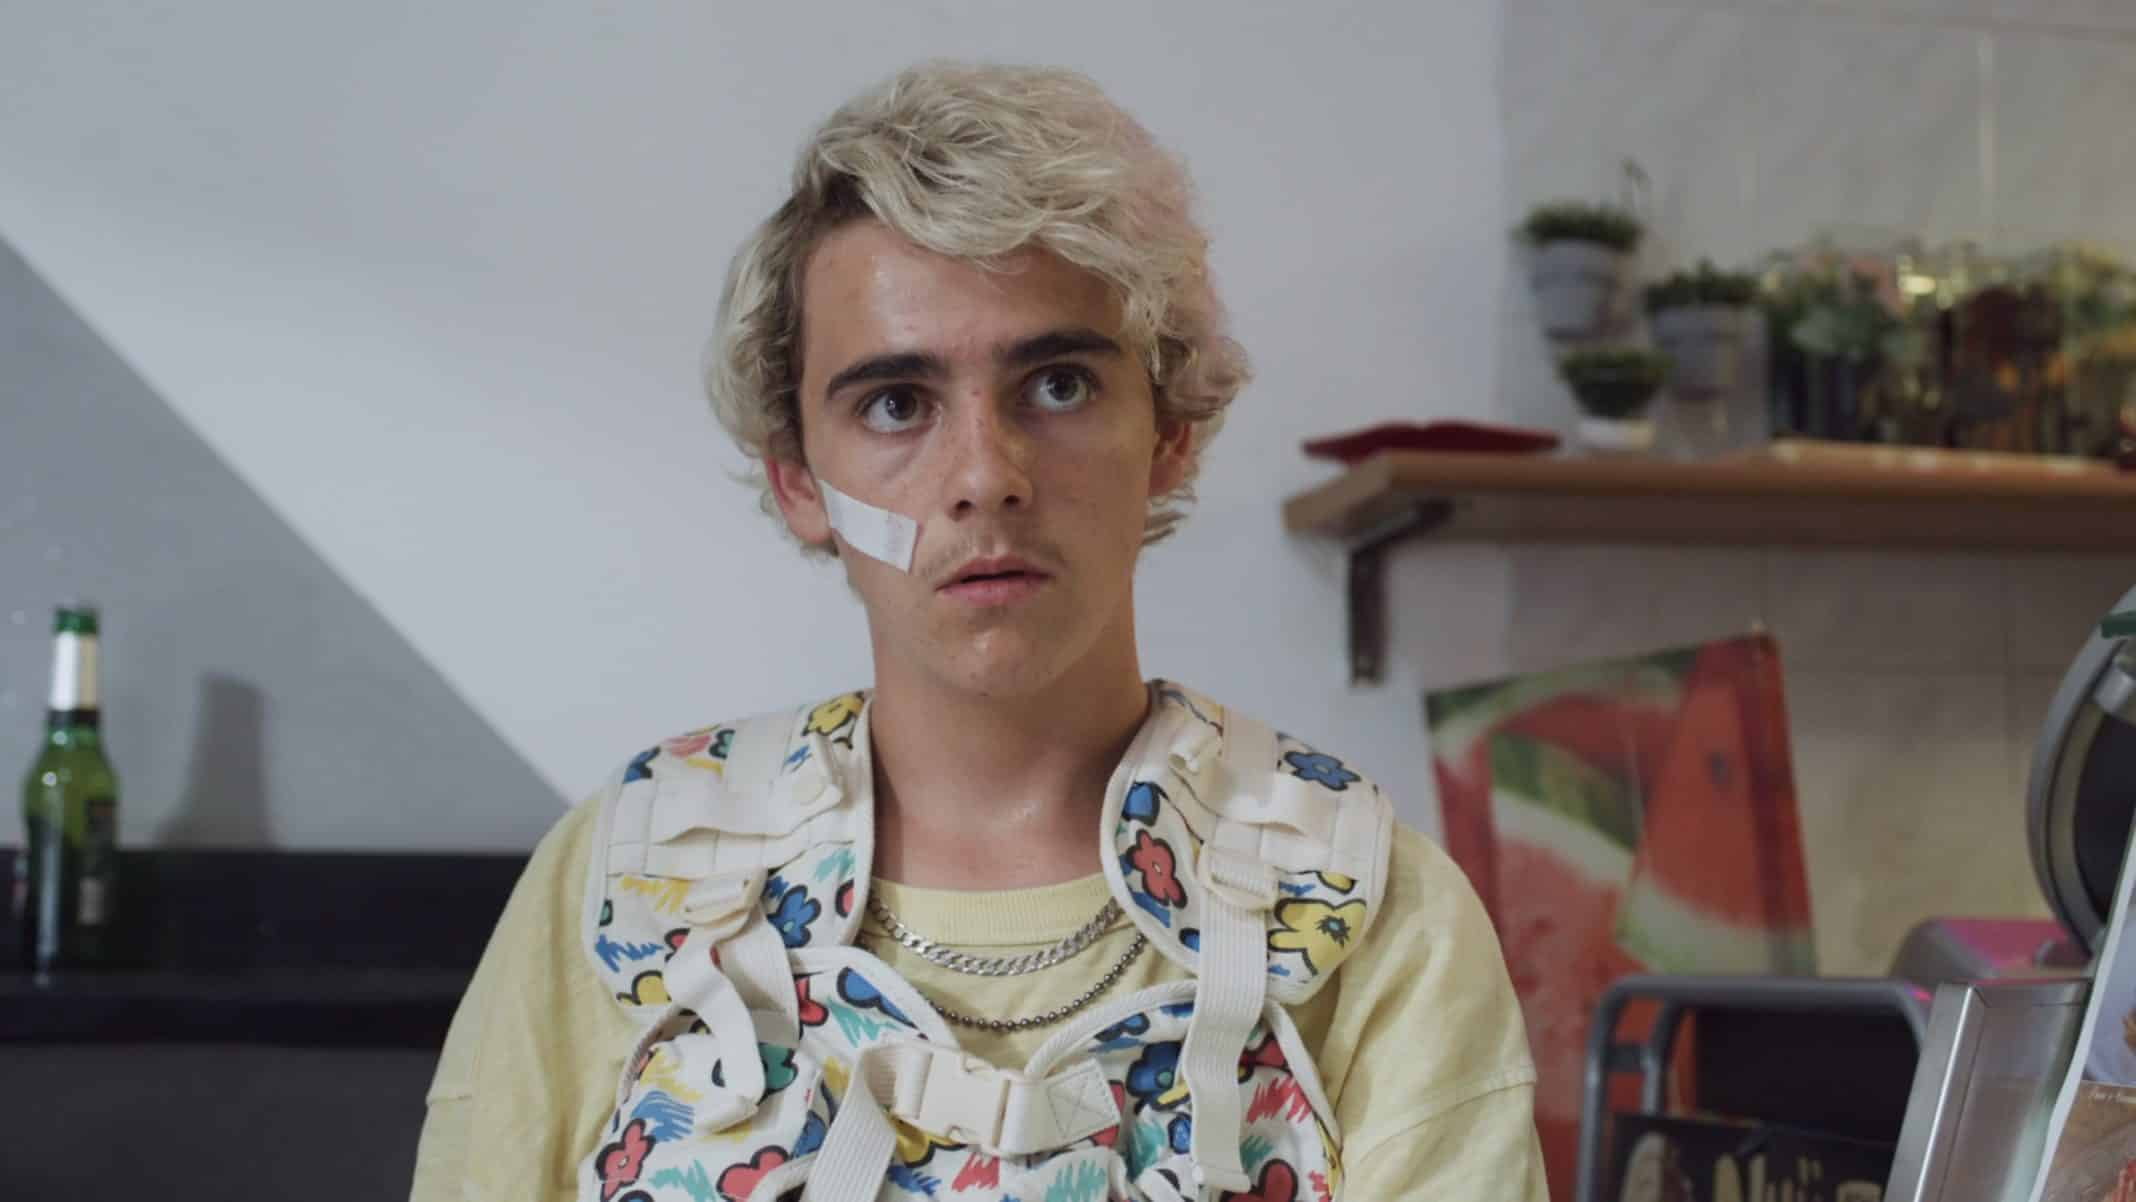 Fraser (Jack Dylan Grazer) in a colorful vest.